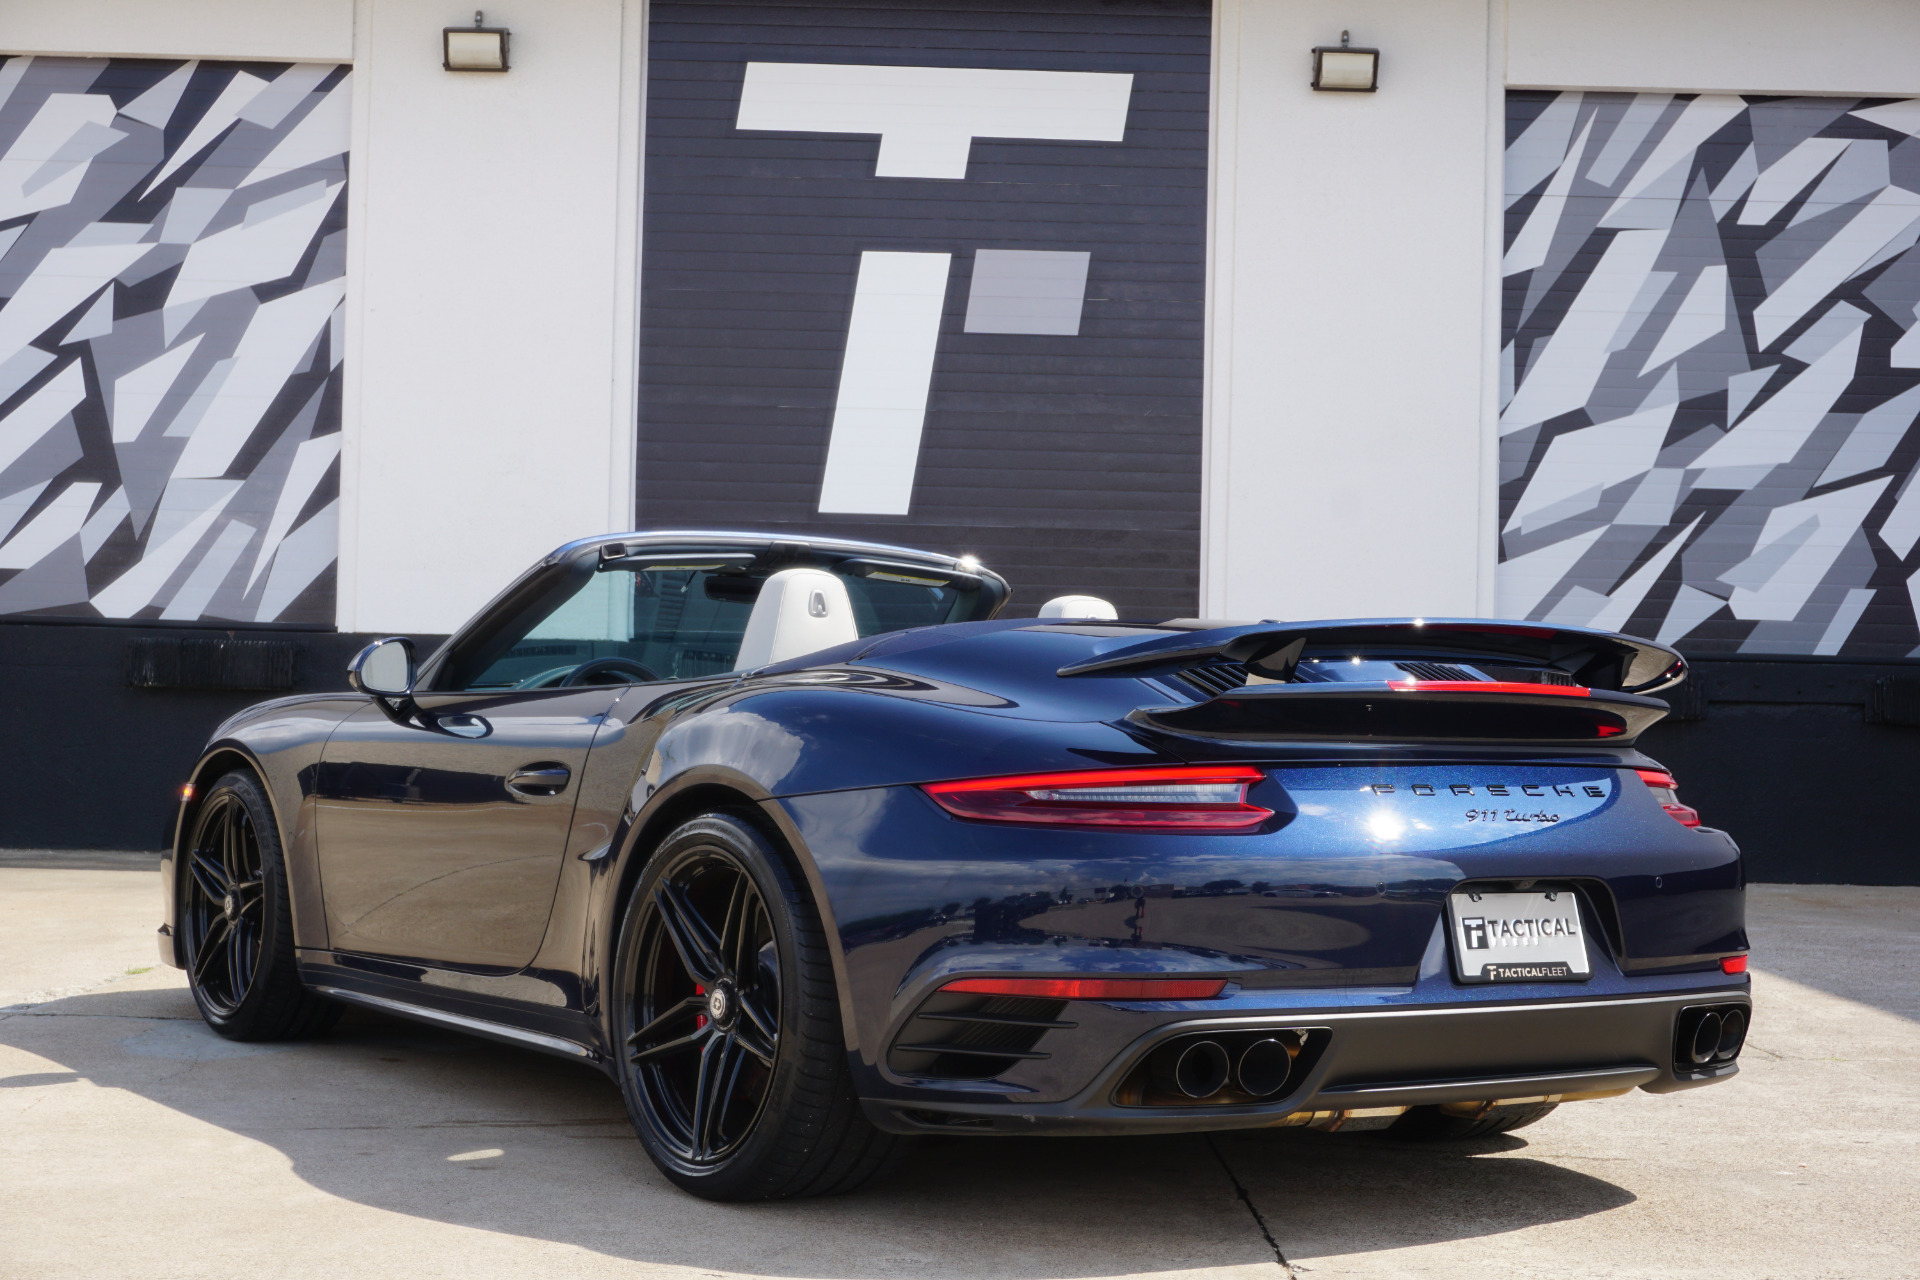 Used-2018-Porsche-911-Turbo-Cabriolet